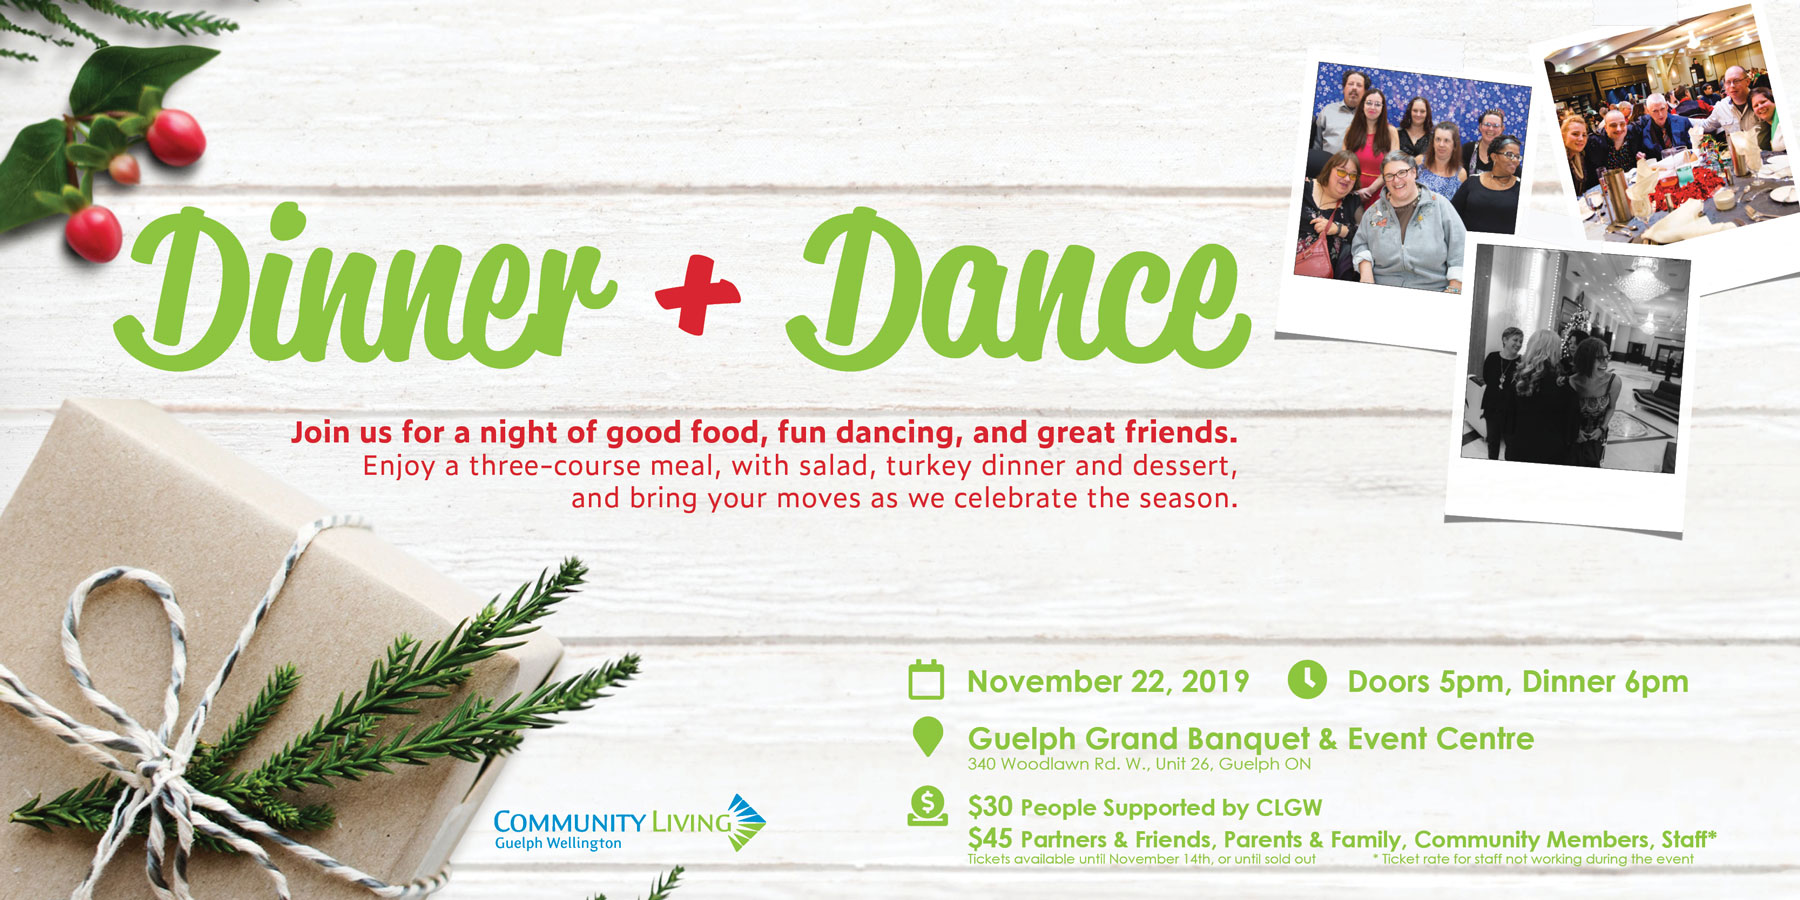 dinner dance for clgw, holiday season, seasons greetings, holiday party, clgw, guelph grand banquet event centre, adults with disabilities